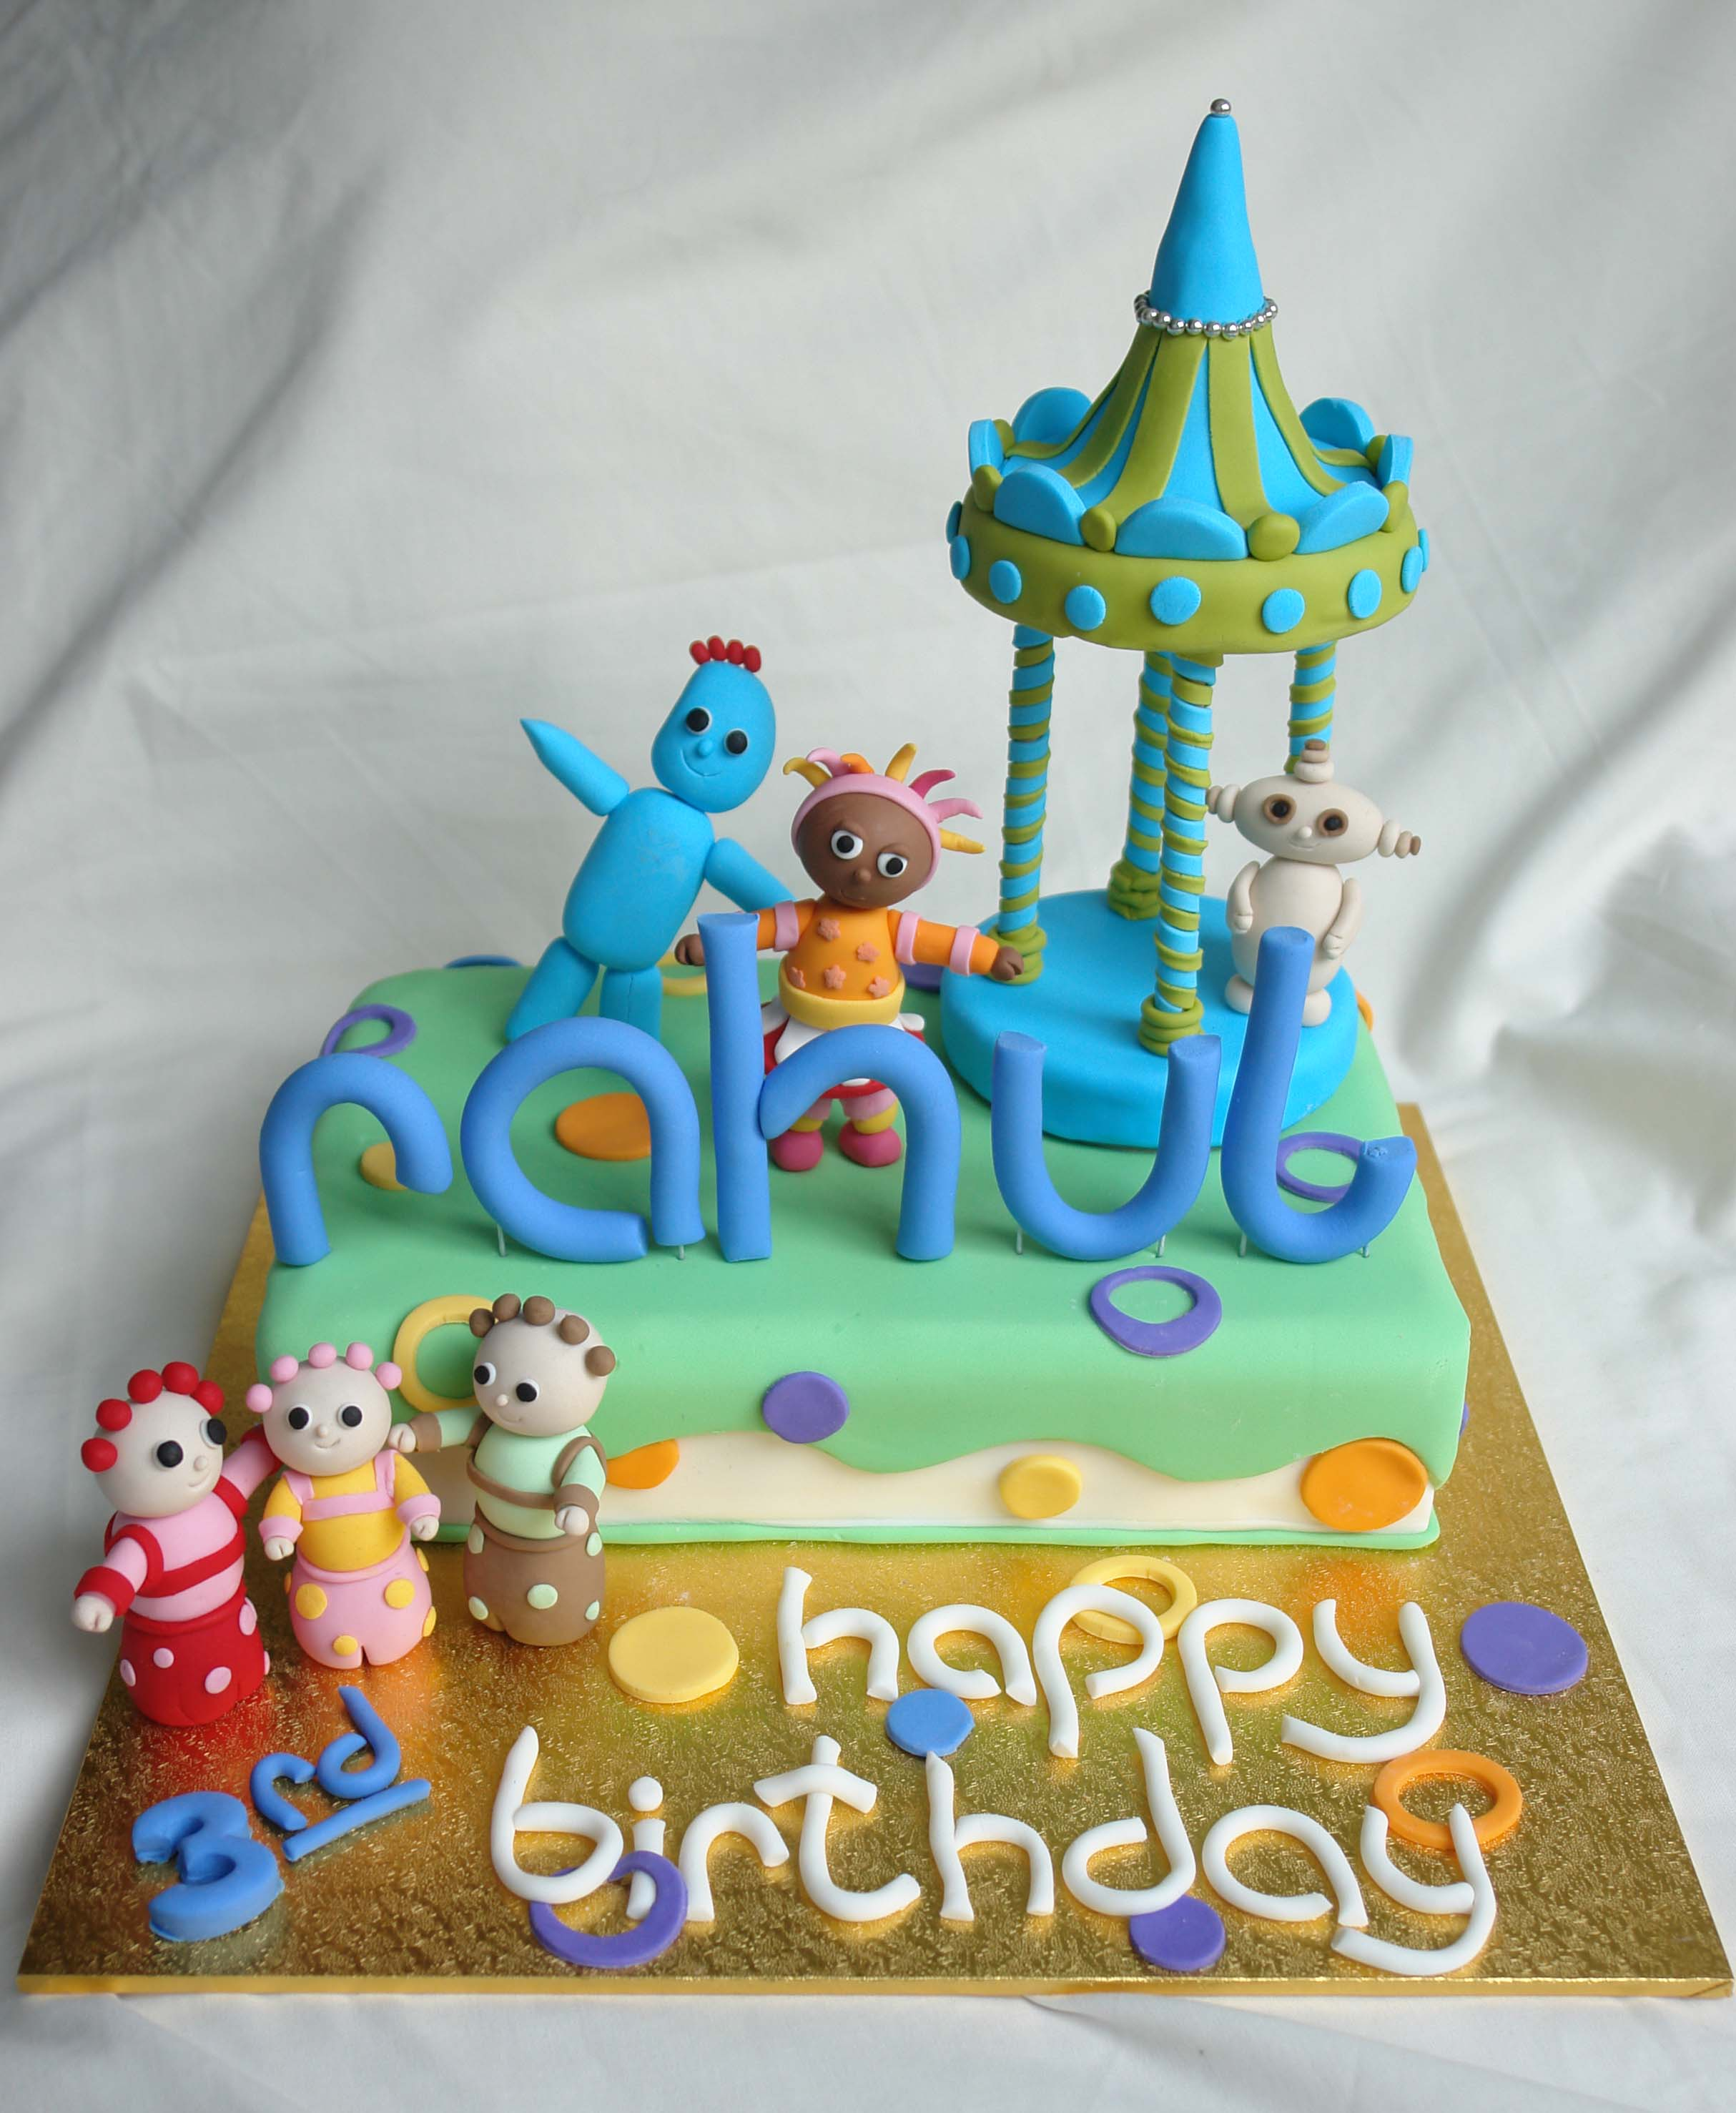 Birthday Cake Images Rahul : Rahul Love Name Image Holidays OO